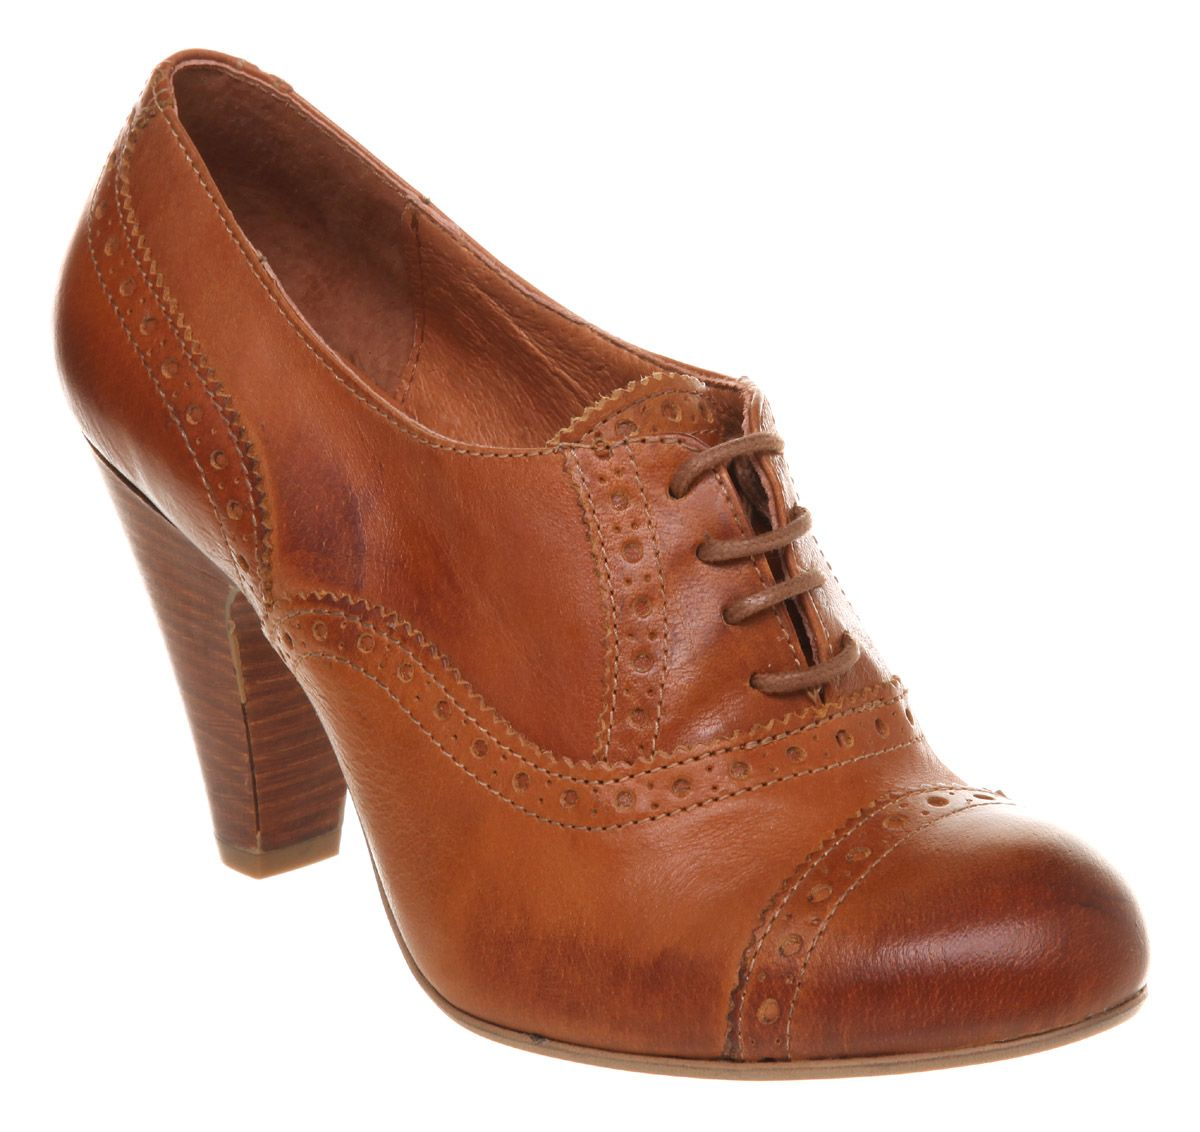 Details About Womens Office Brogue Baby Tan Leather Heels